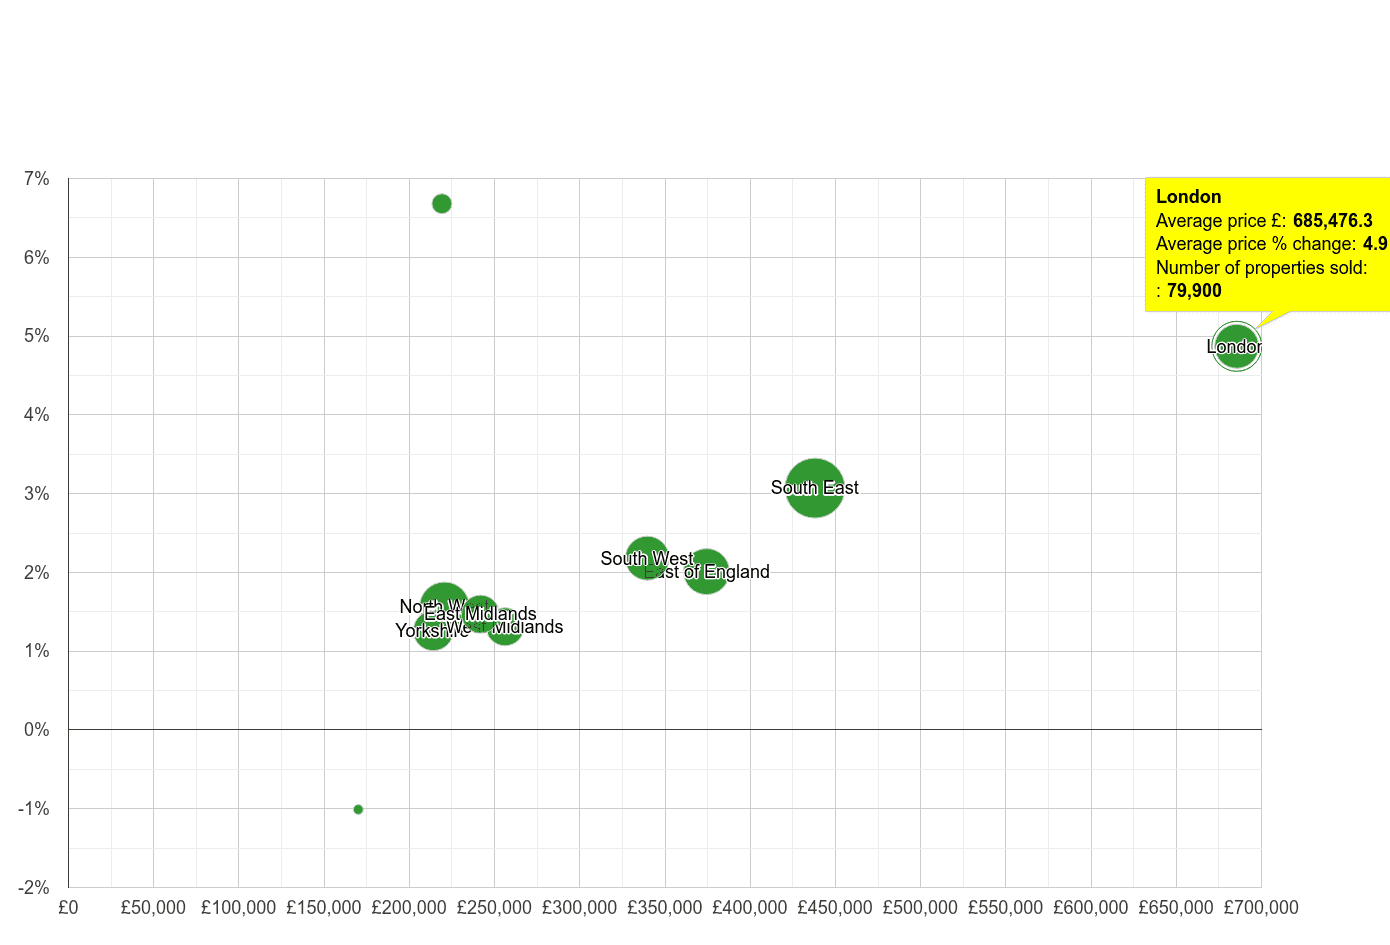 London house prices compared to other regions